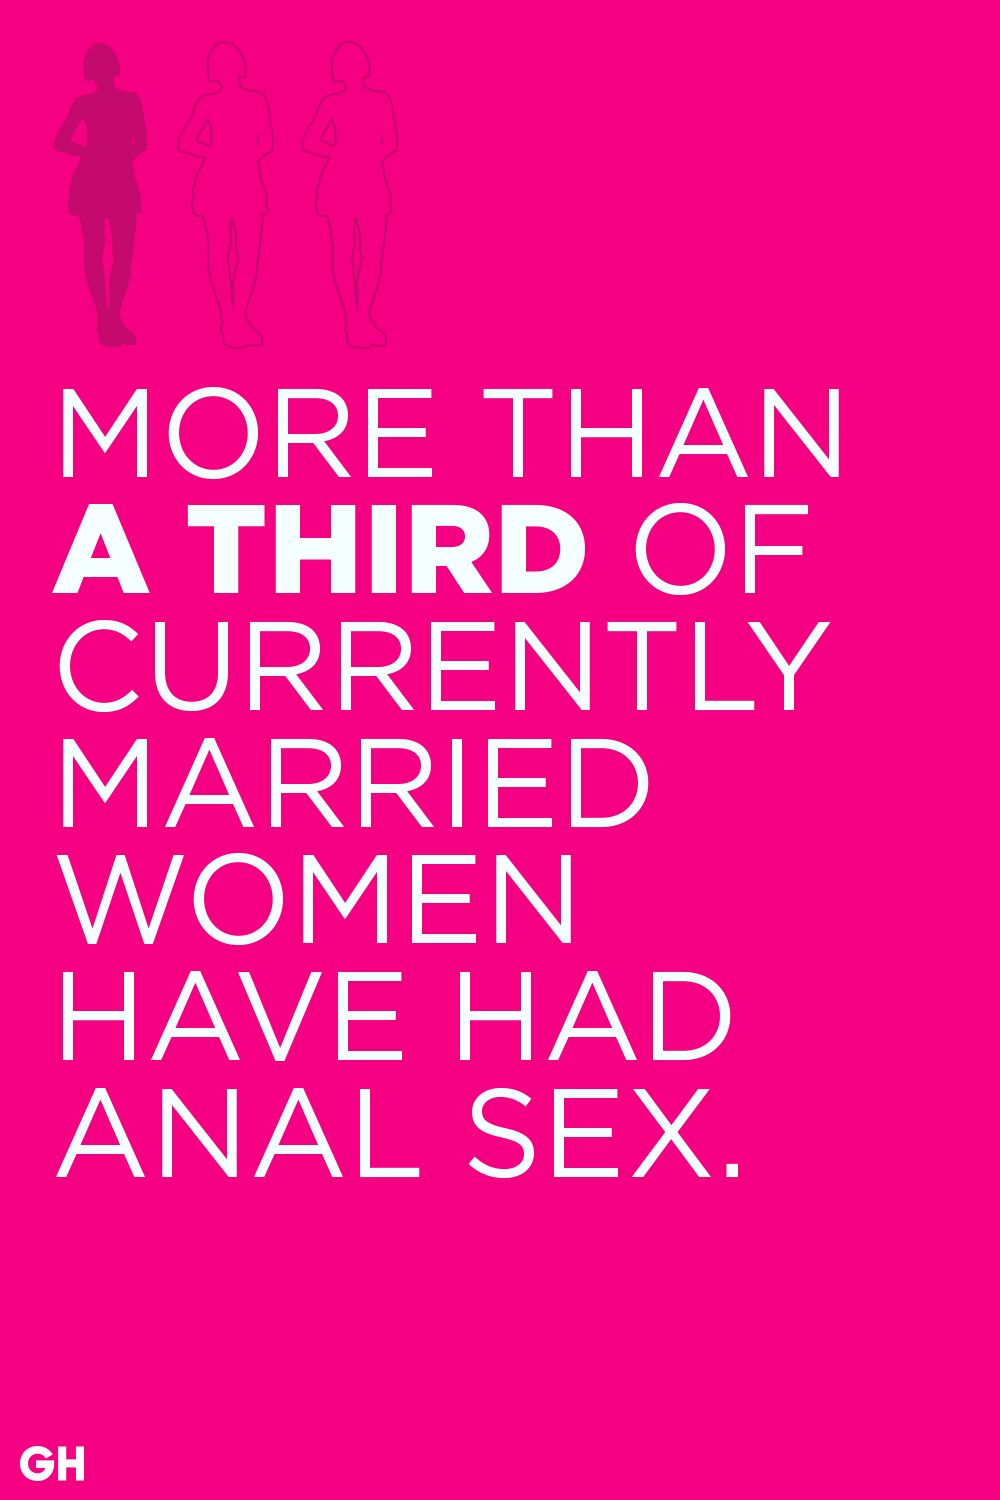 Anal sex before marriage